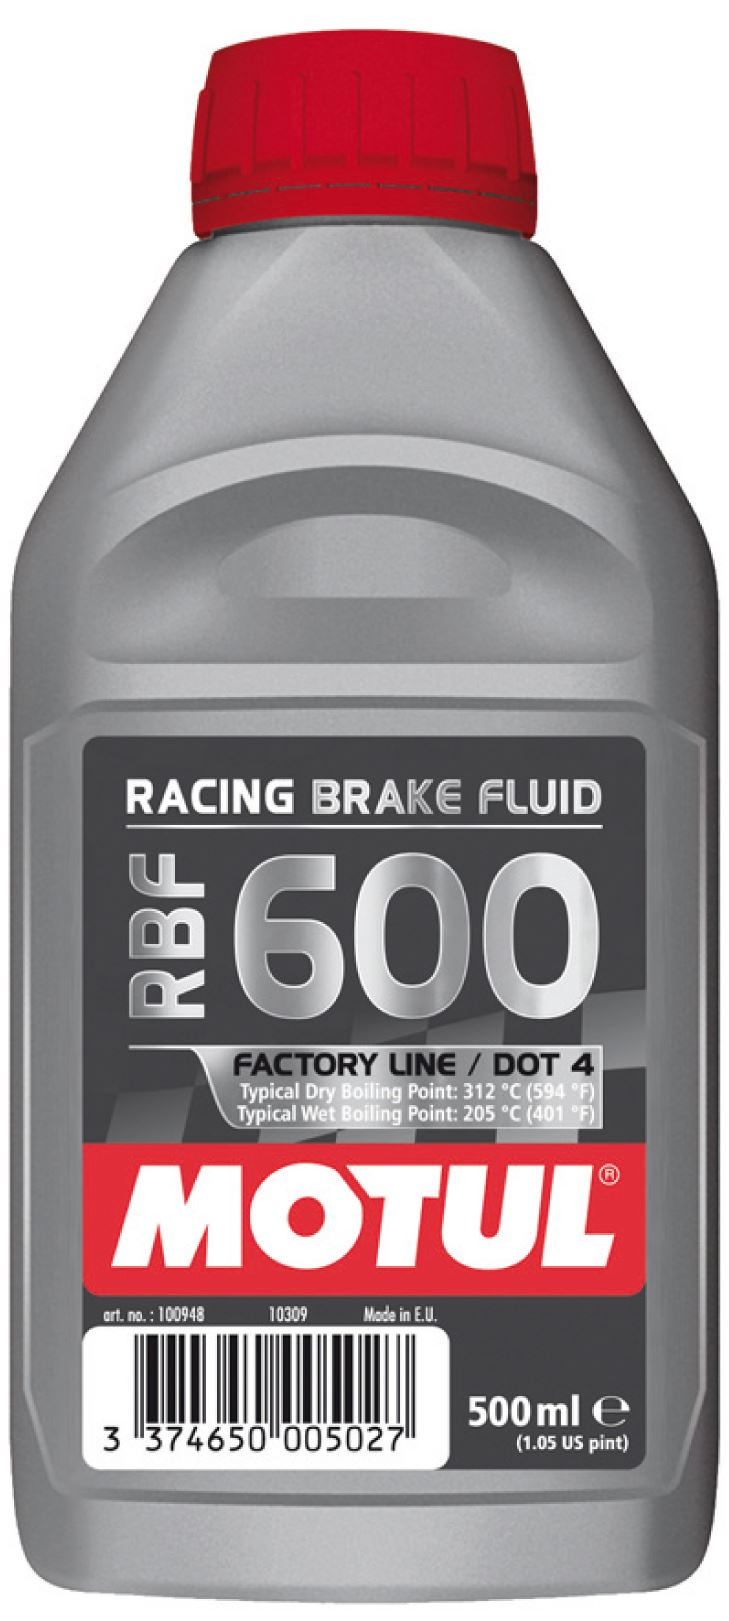 Motul RBF600 Brake Fluid – 500mL